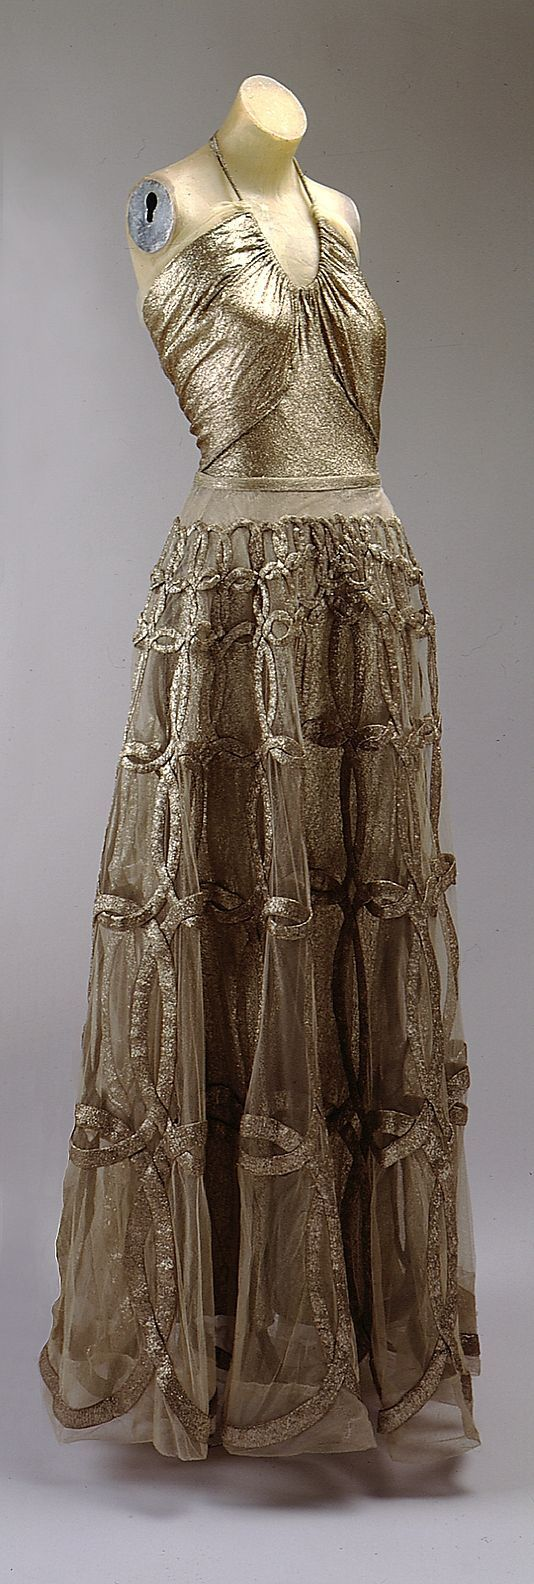 Vionnet Dress 1938-39